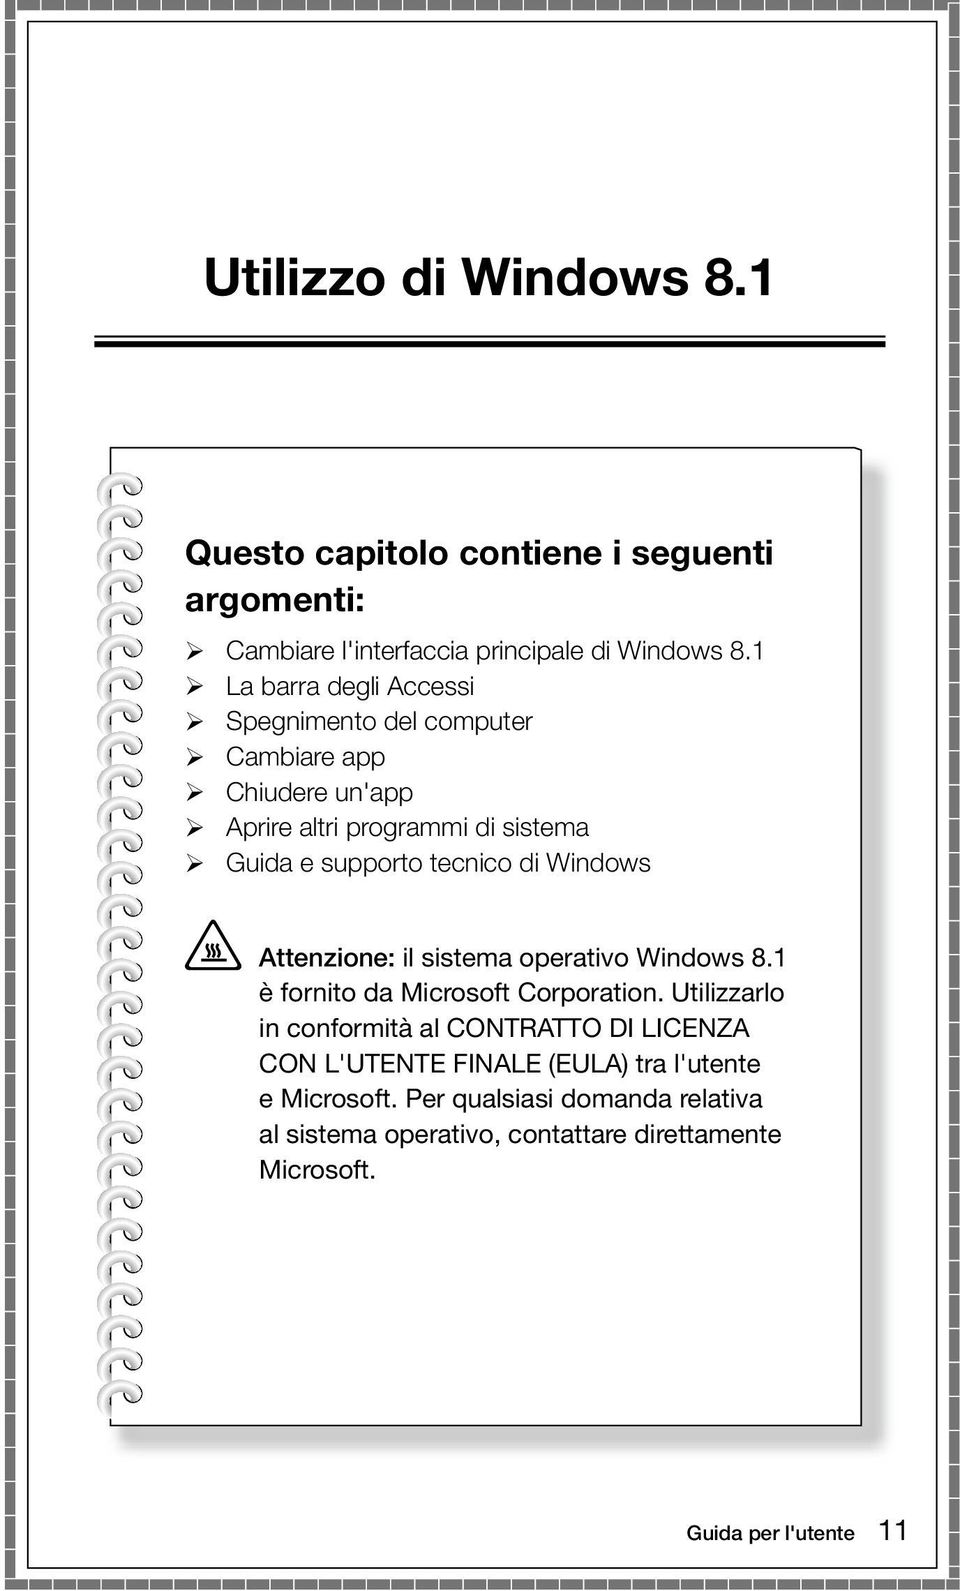 di Windows Attenzione: il sistema operativo Windows 8.1 è fornito da Microsoft Corporation.